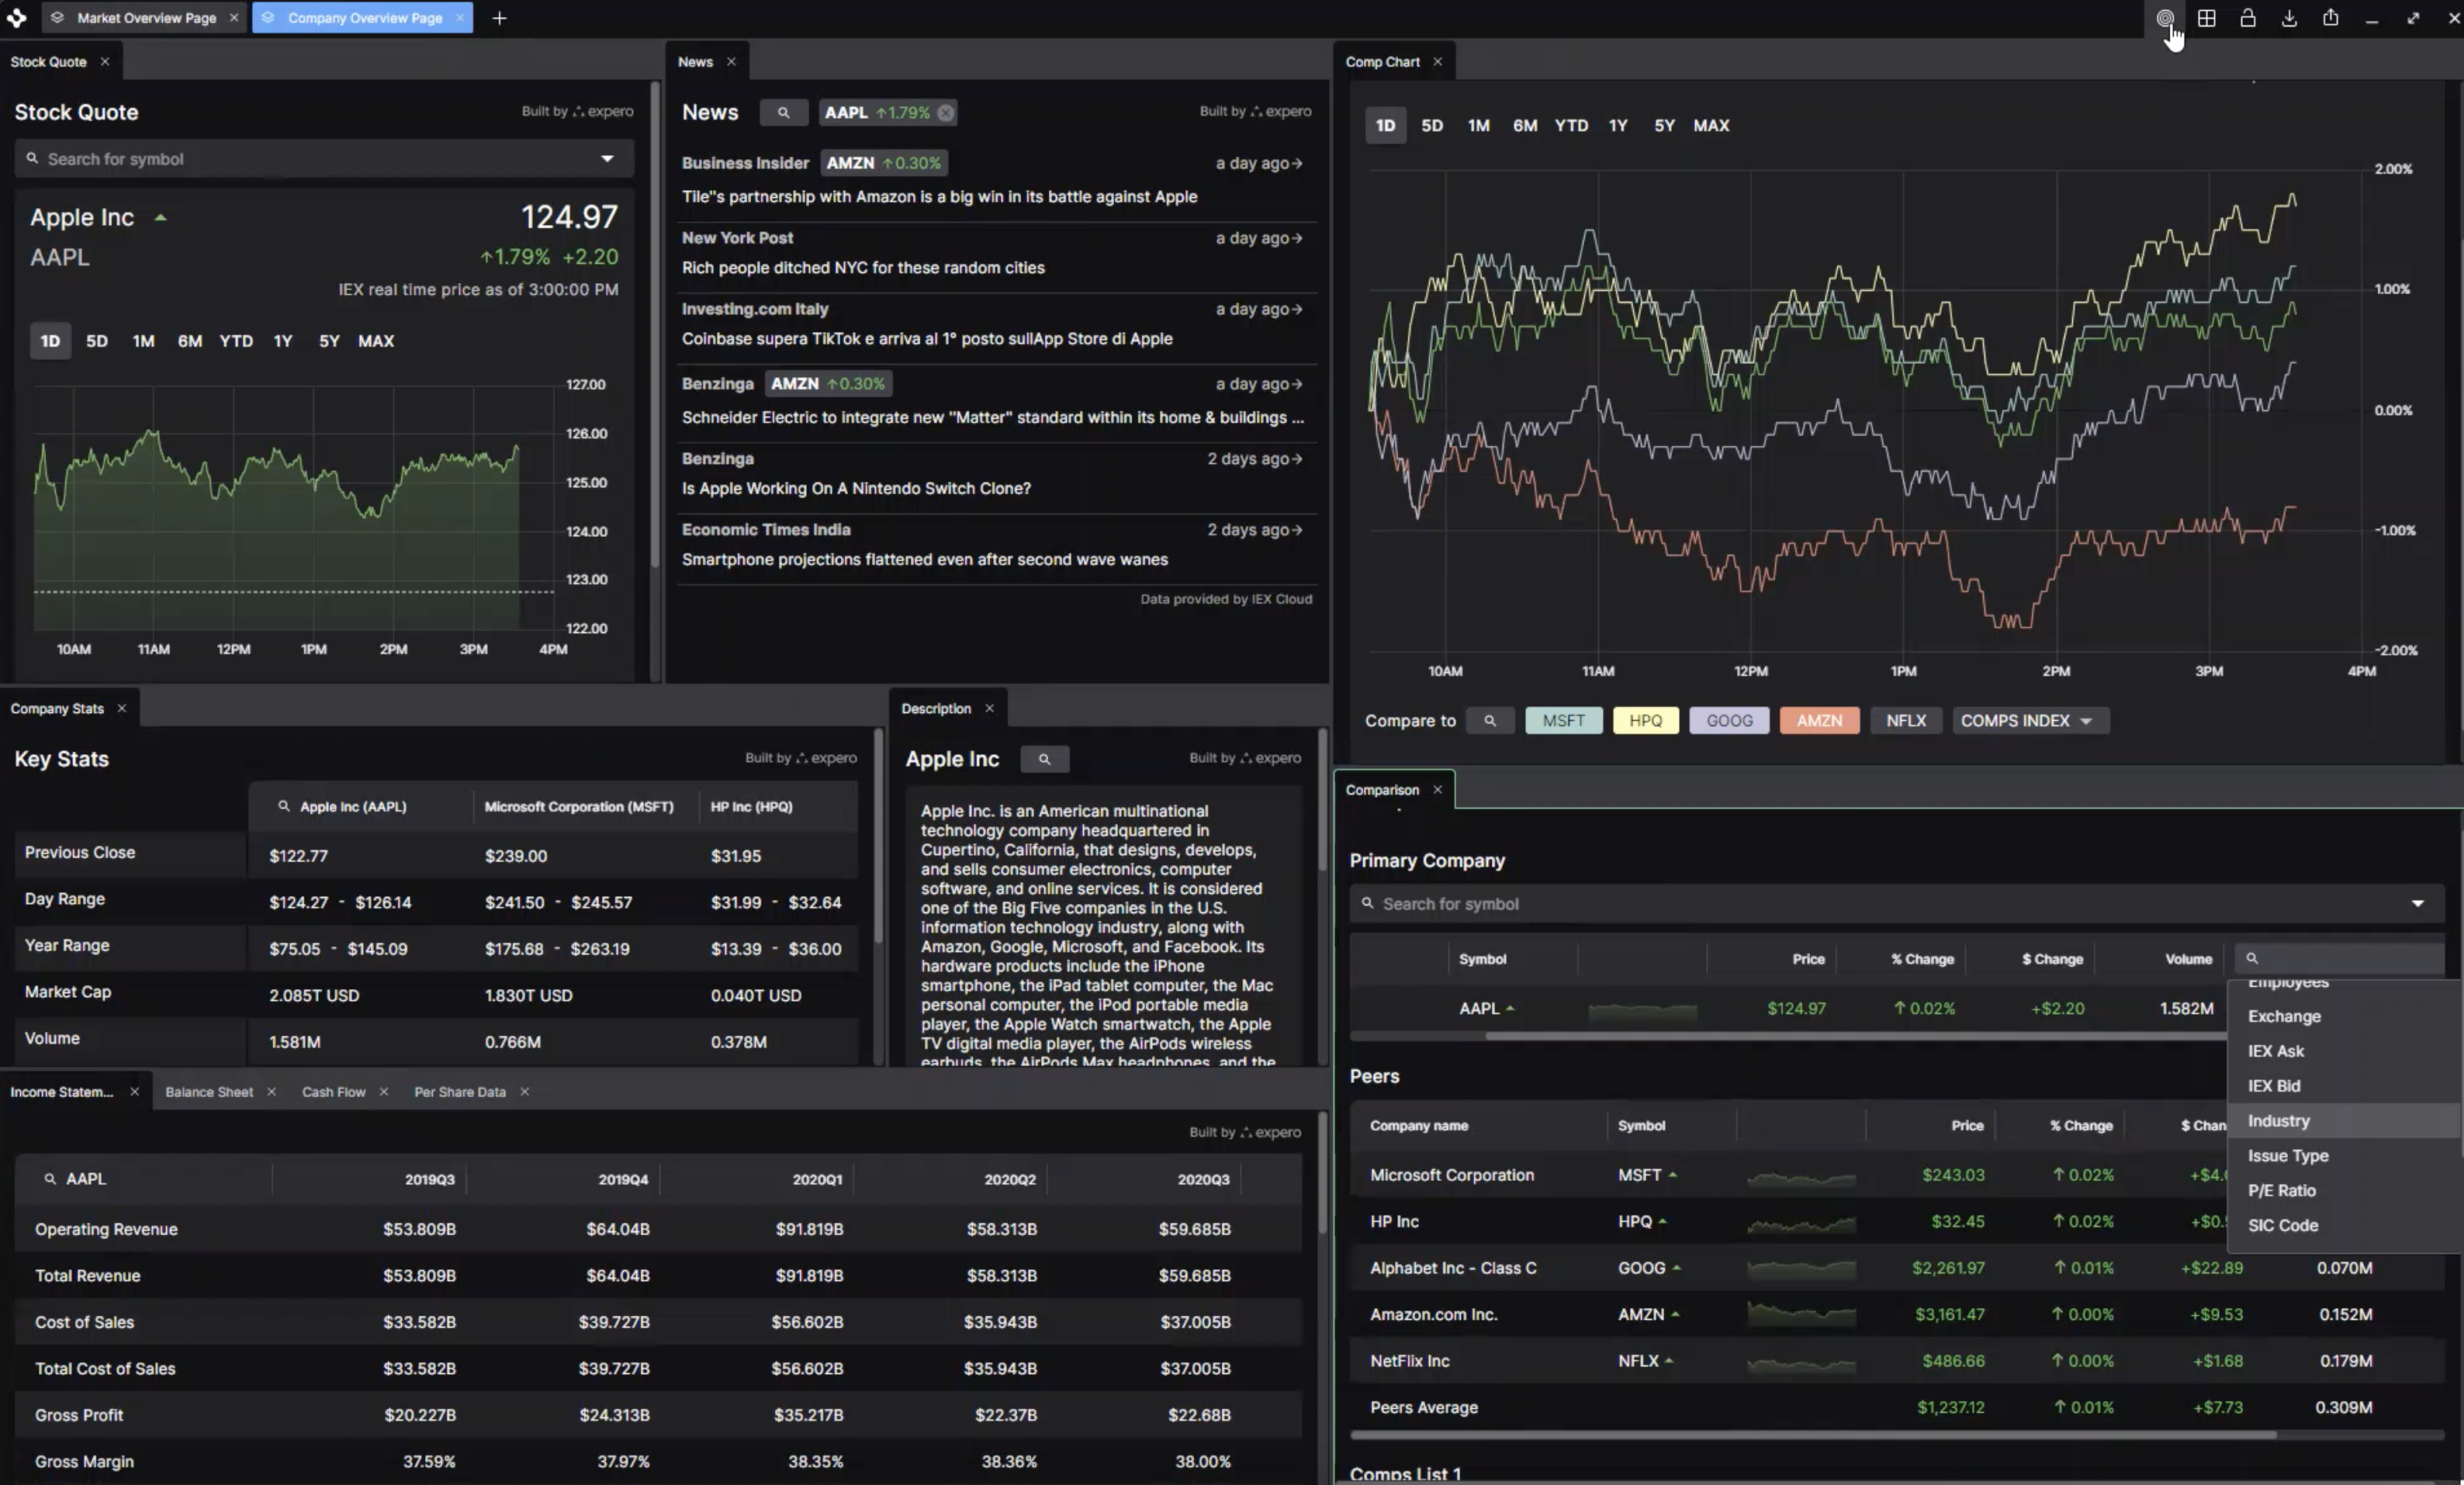 Company Overview component dashboard.